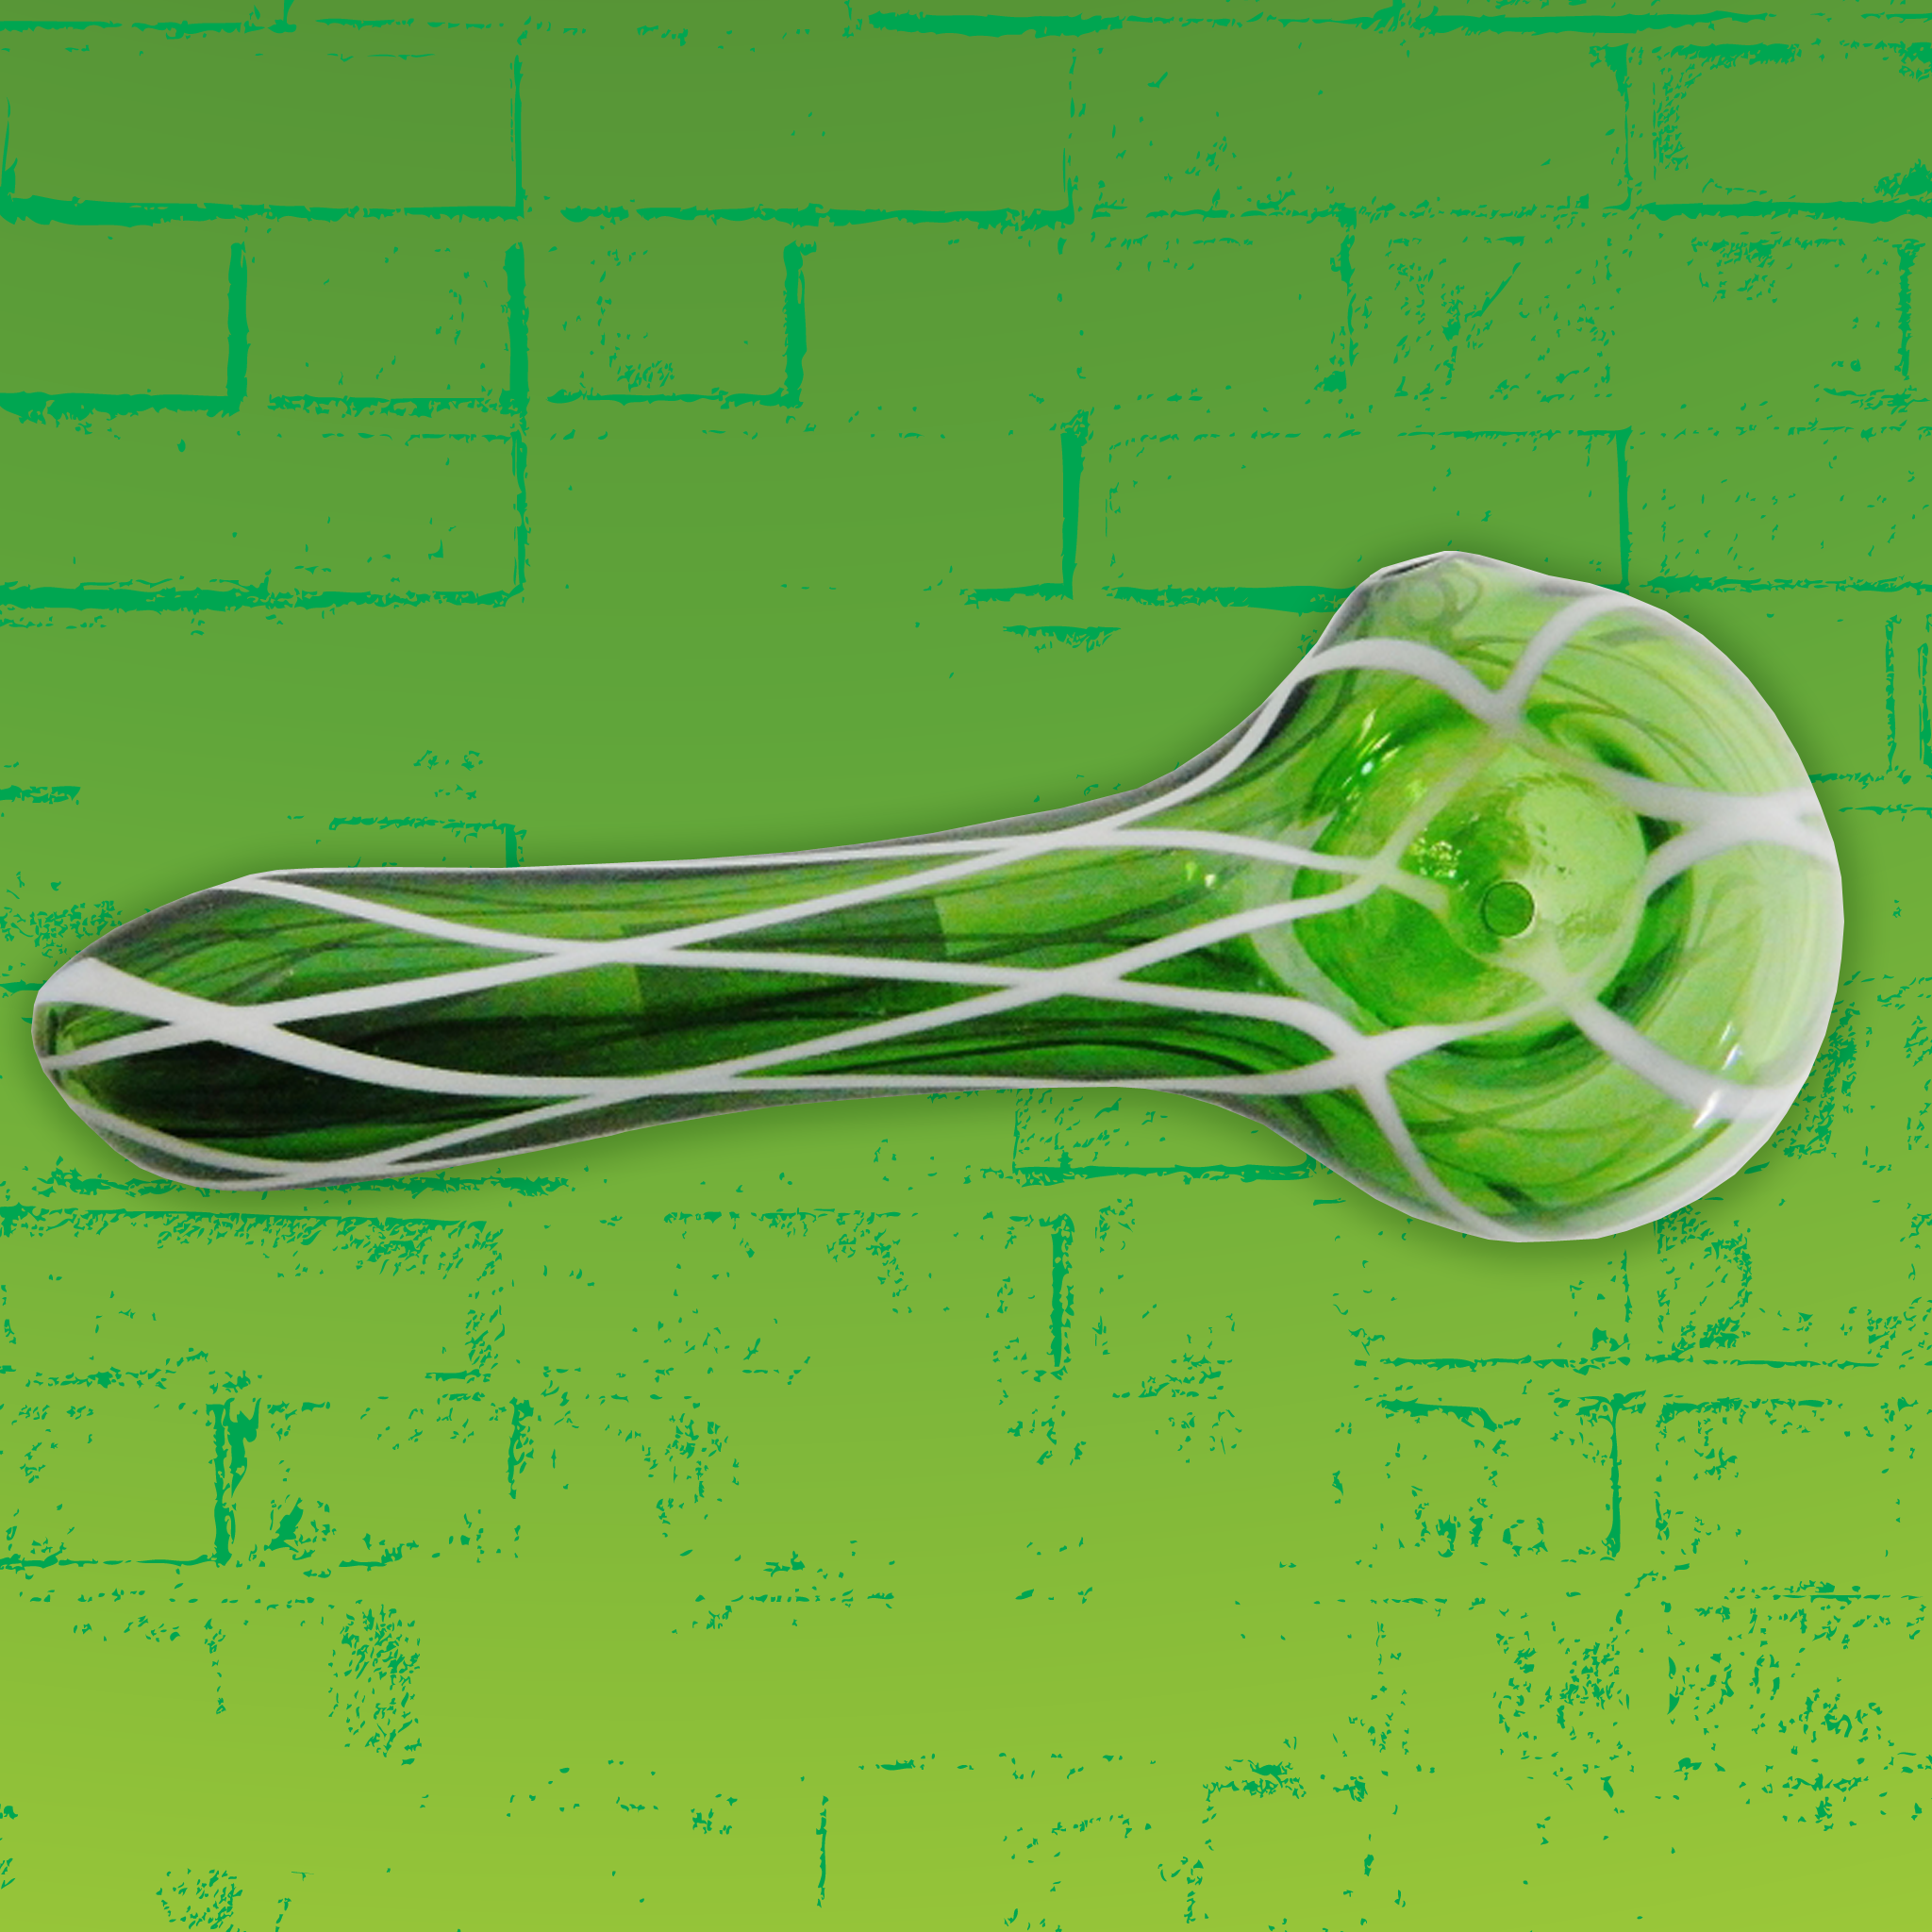 Phresh Picks Green Reticello Spoon